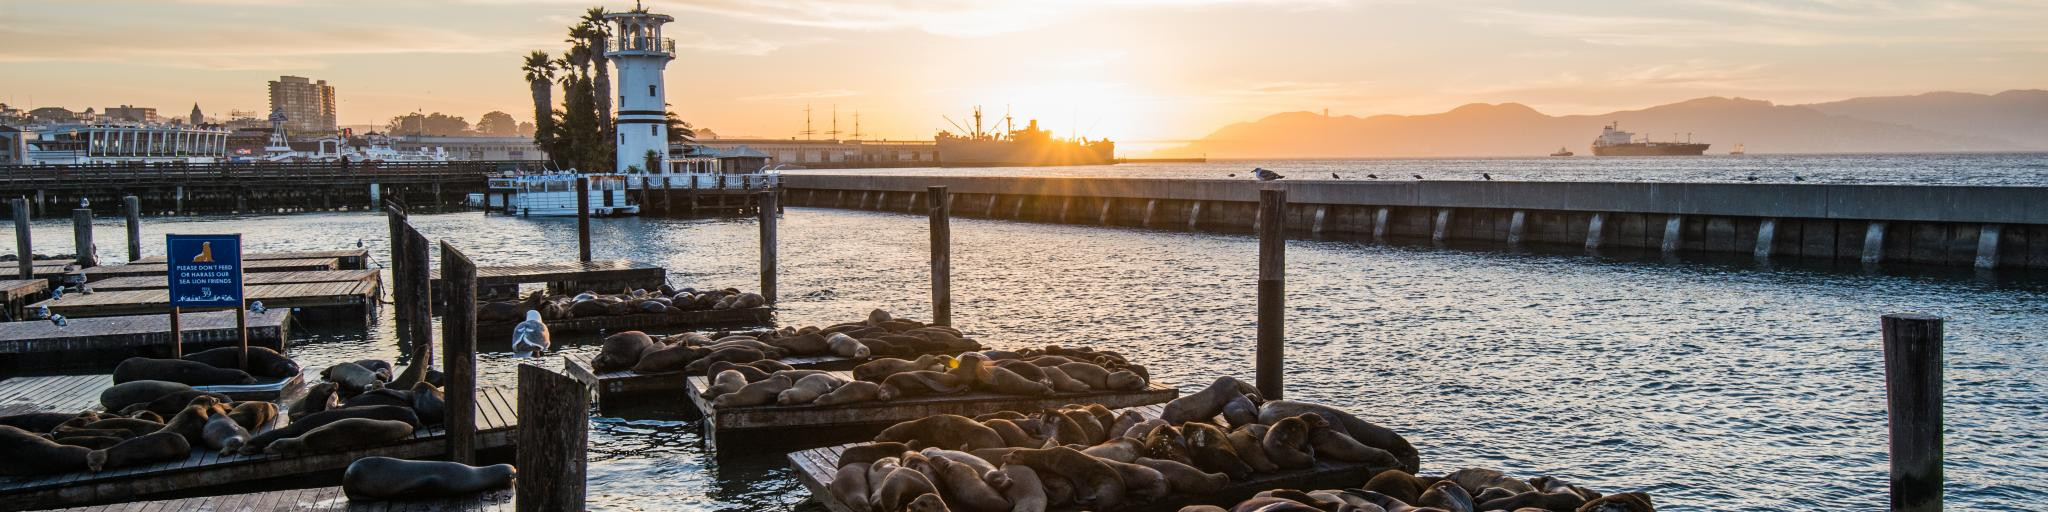 Seals on wooden platforms along Pier 39 in San Francisco at sunset.